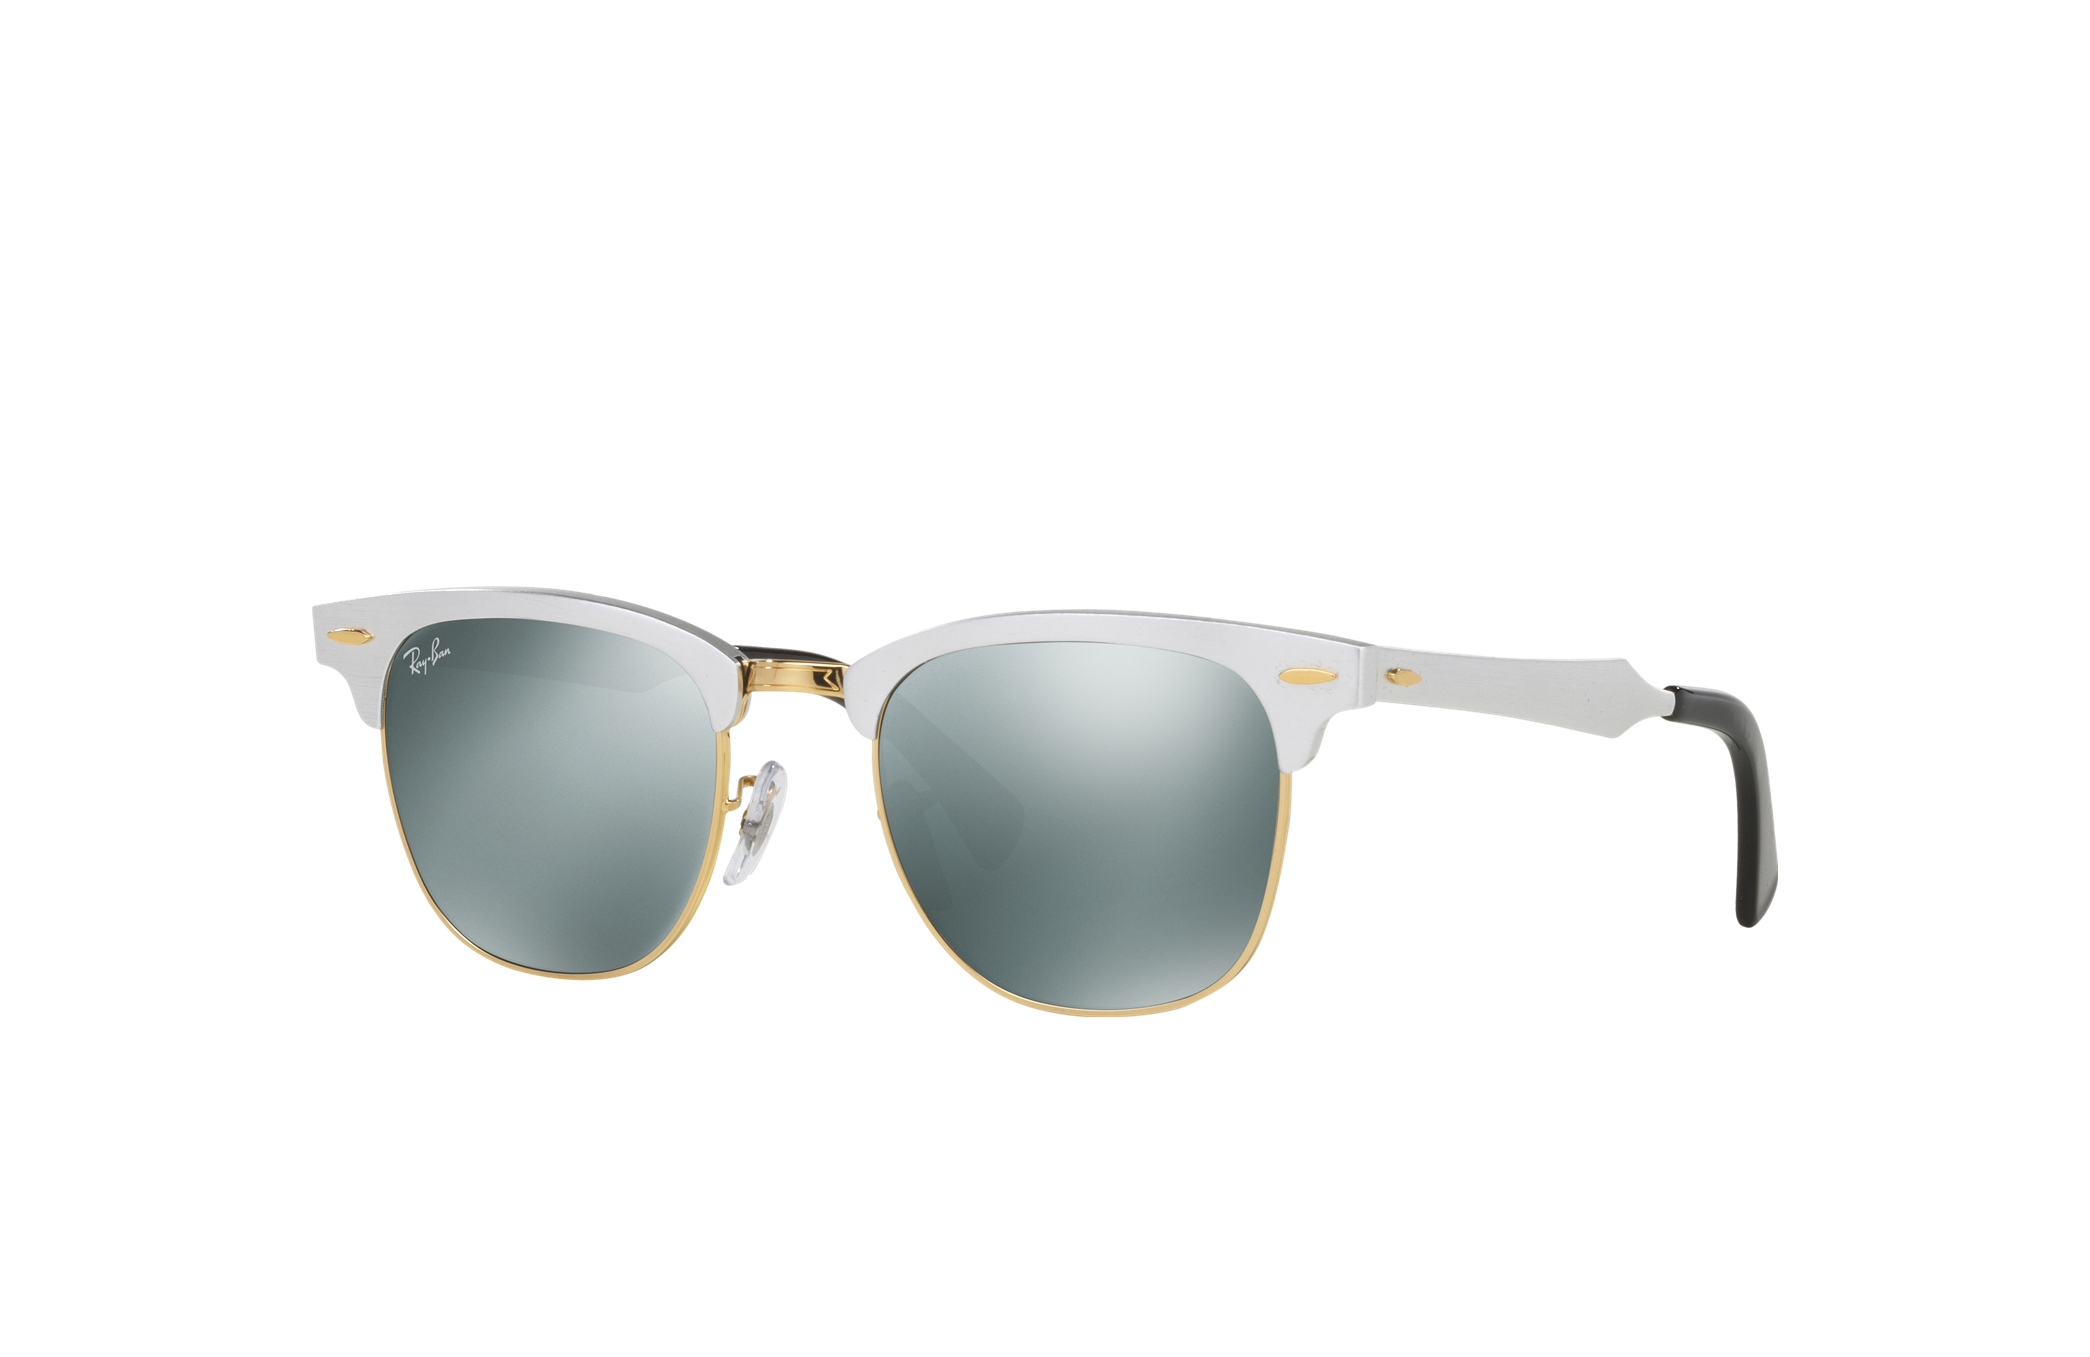 Ray-Ban Clubmaster Aluminum Silver, Gray Lenses - RB3507